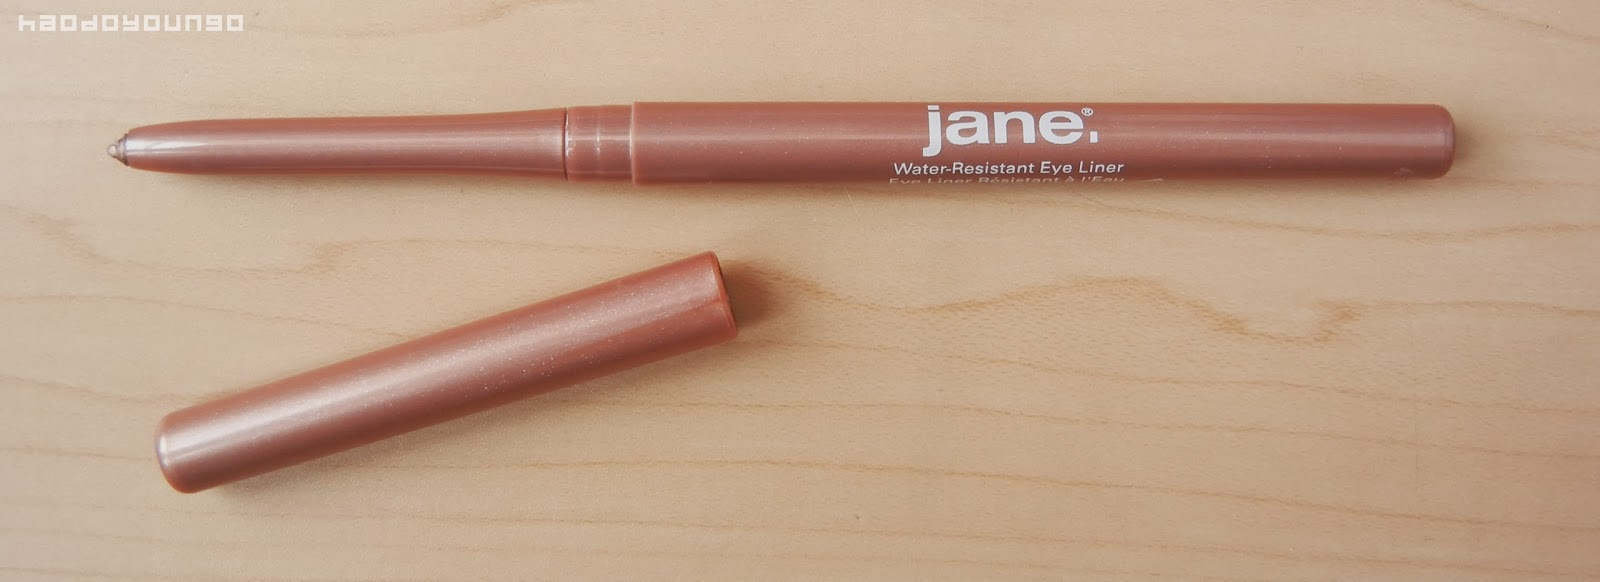 Review & Swatches: Jane Cosmetics Water-Resistant Eye Liner in ...